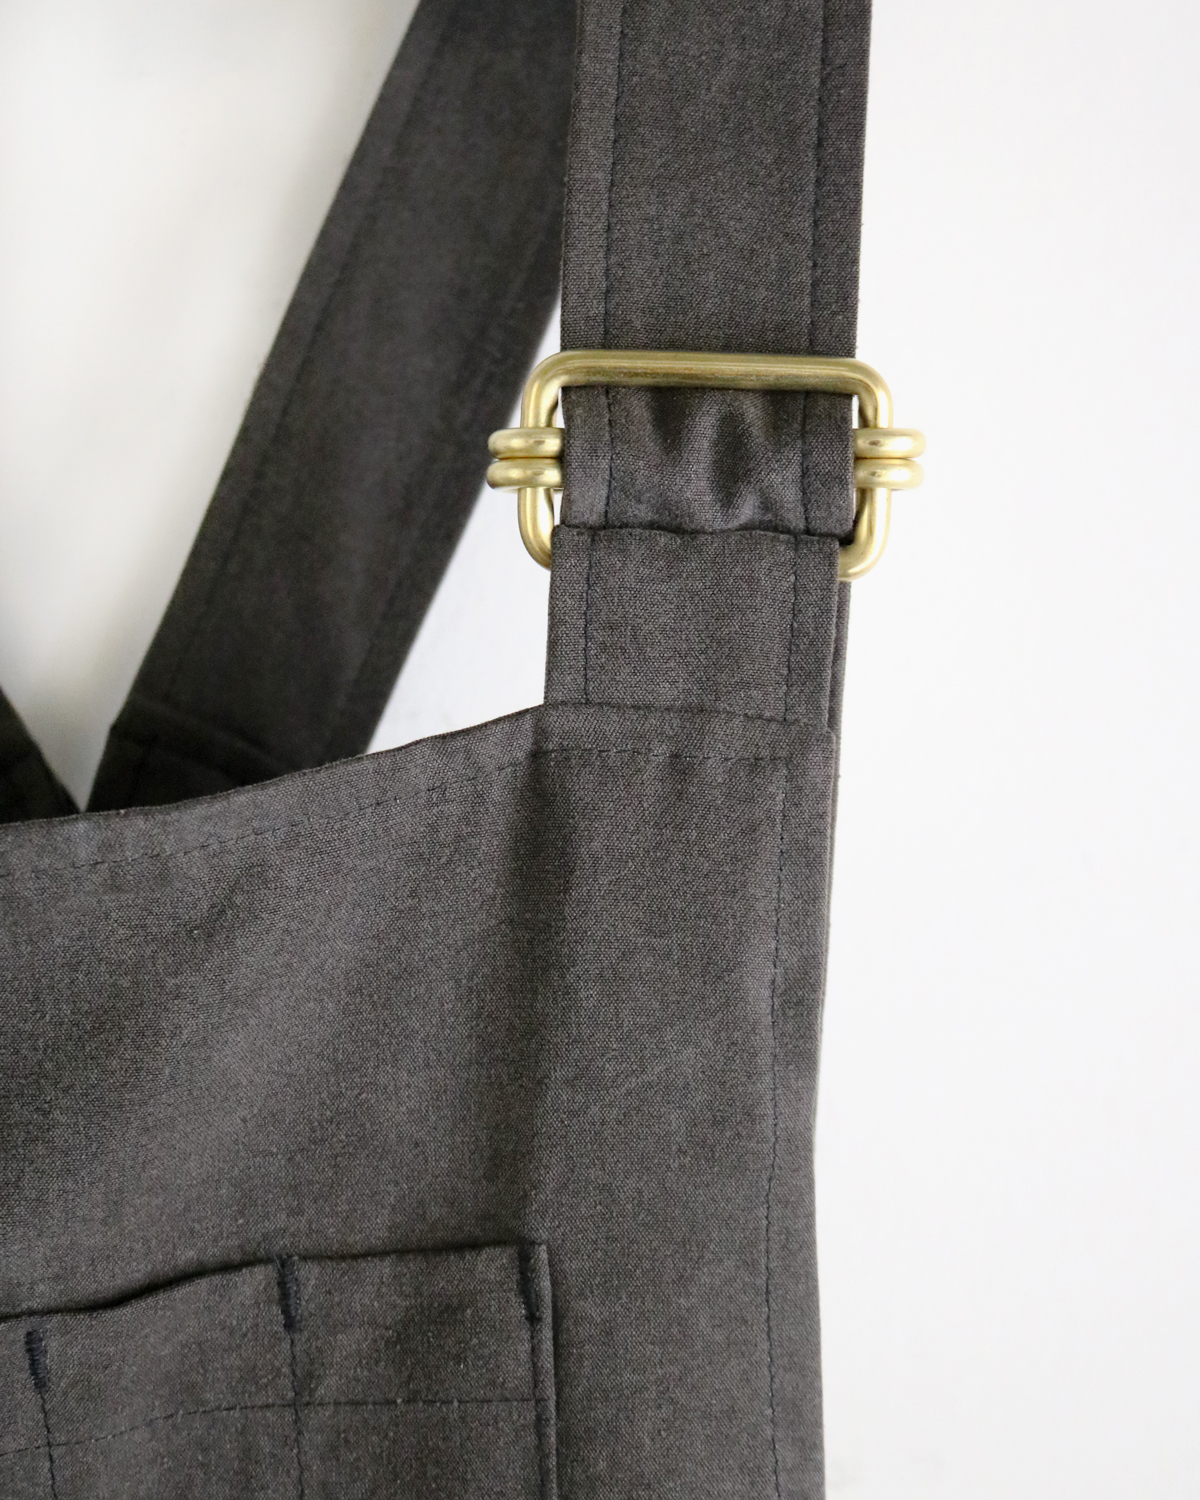 CELLULOSE NIDOM OVERALL - Black NEAT